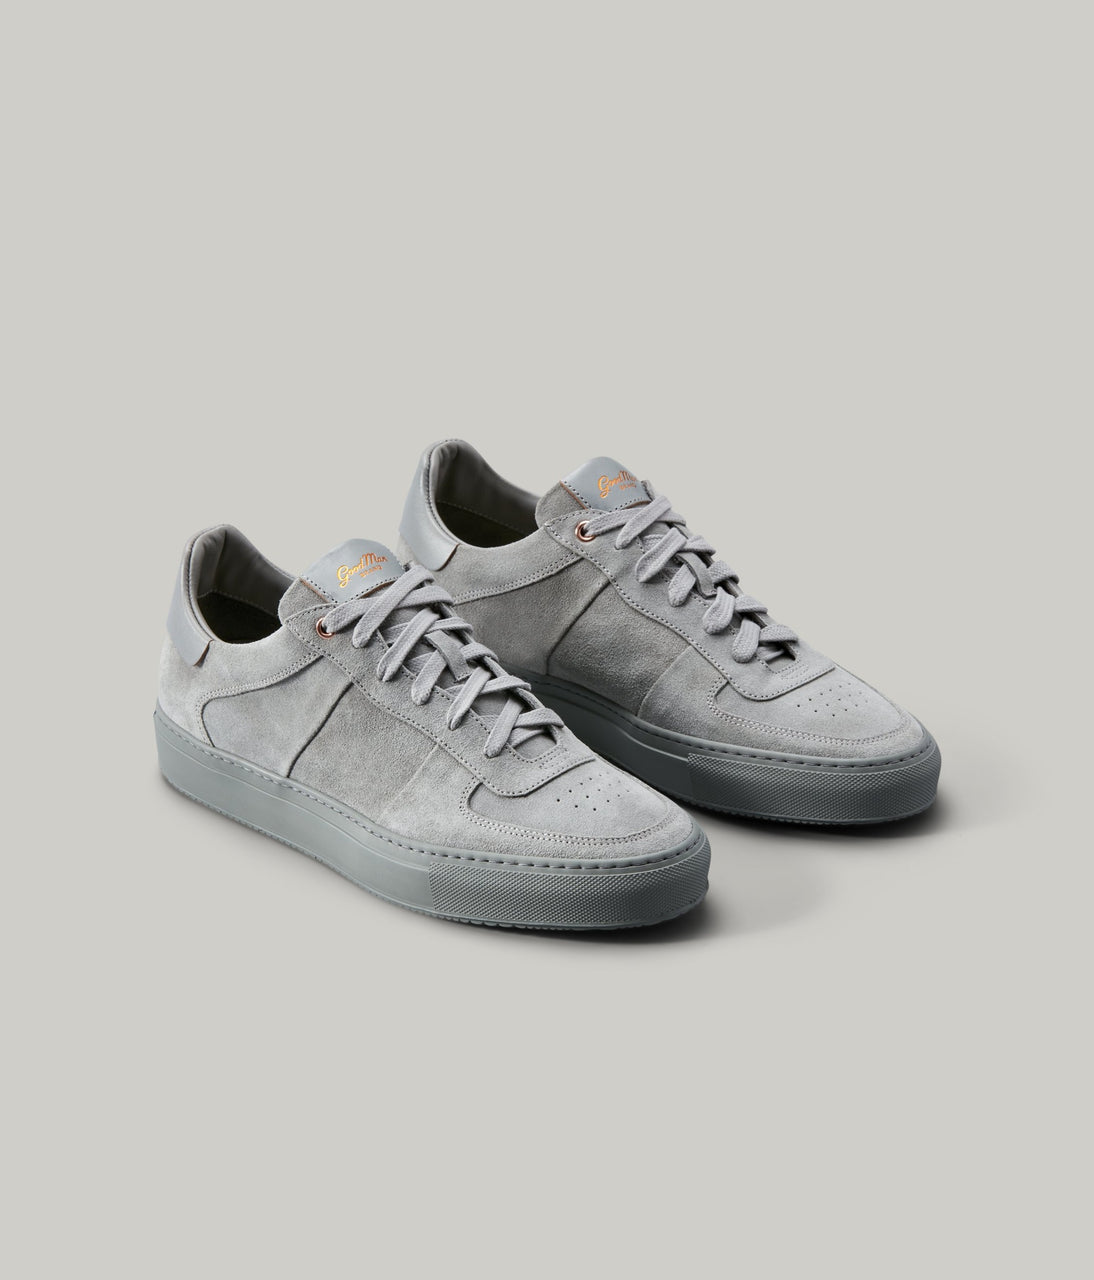 Legend Pro Lo-Top Premium Sneaker in Suede - Silver - Good Man Brand - Legend Pro Lo-Top Premium Sneaker in Suede - Silver